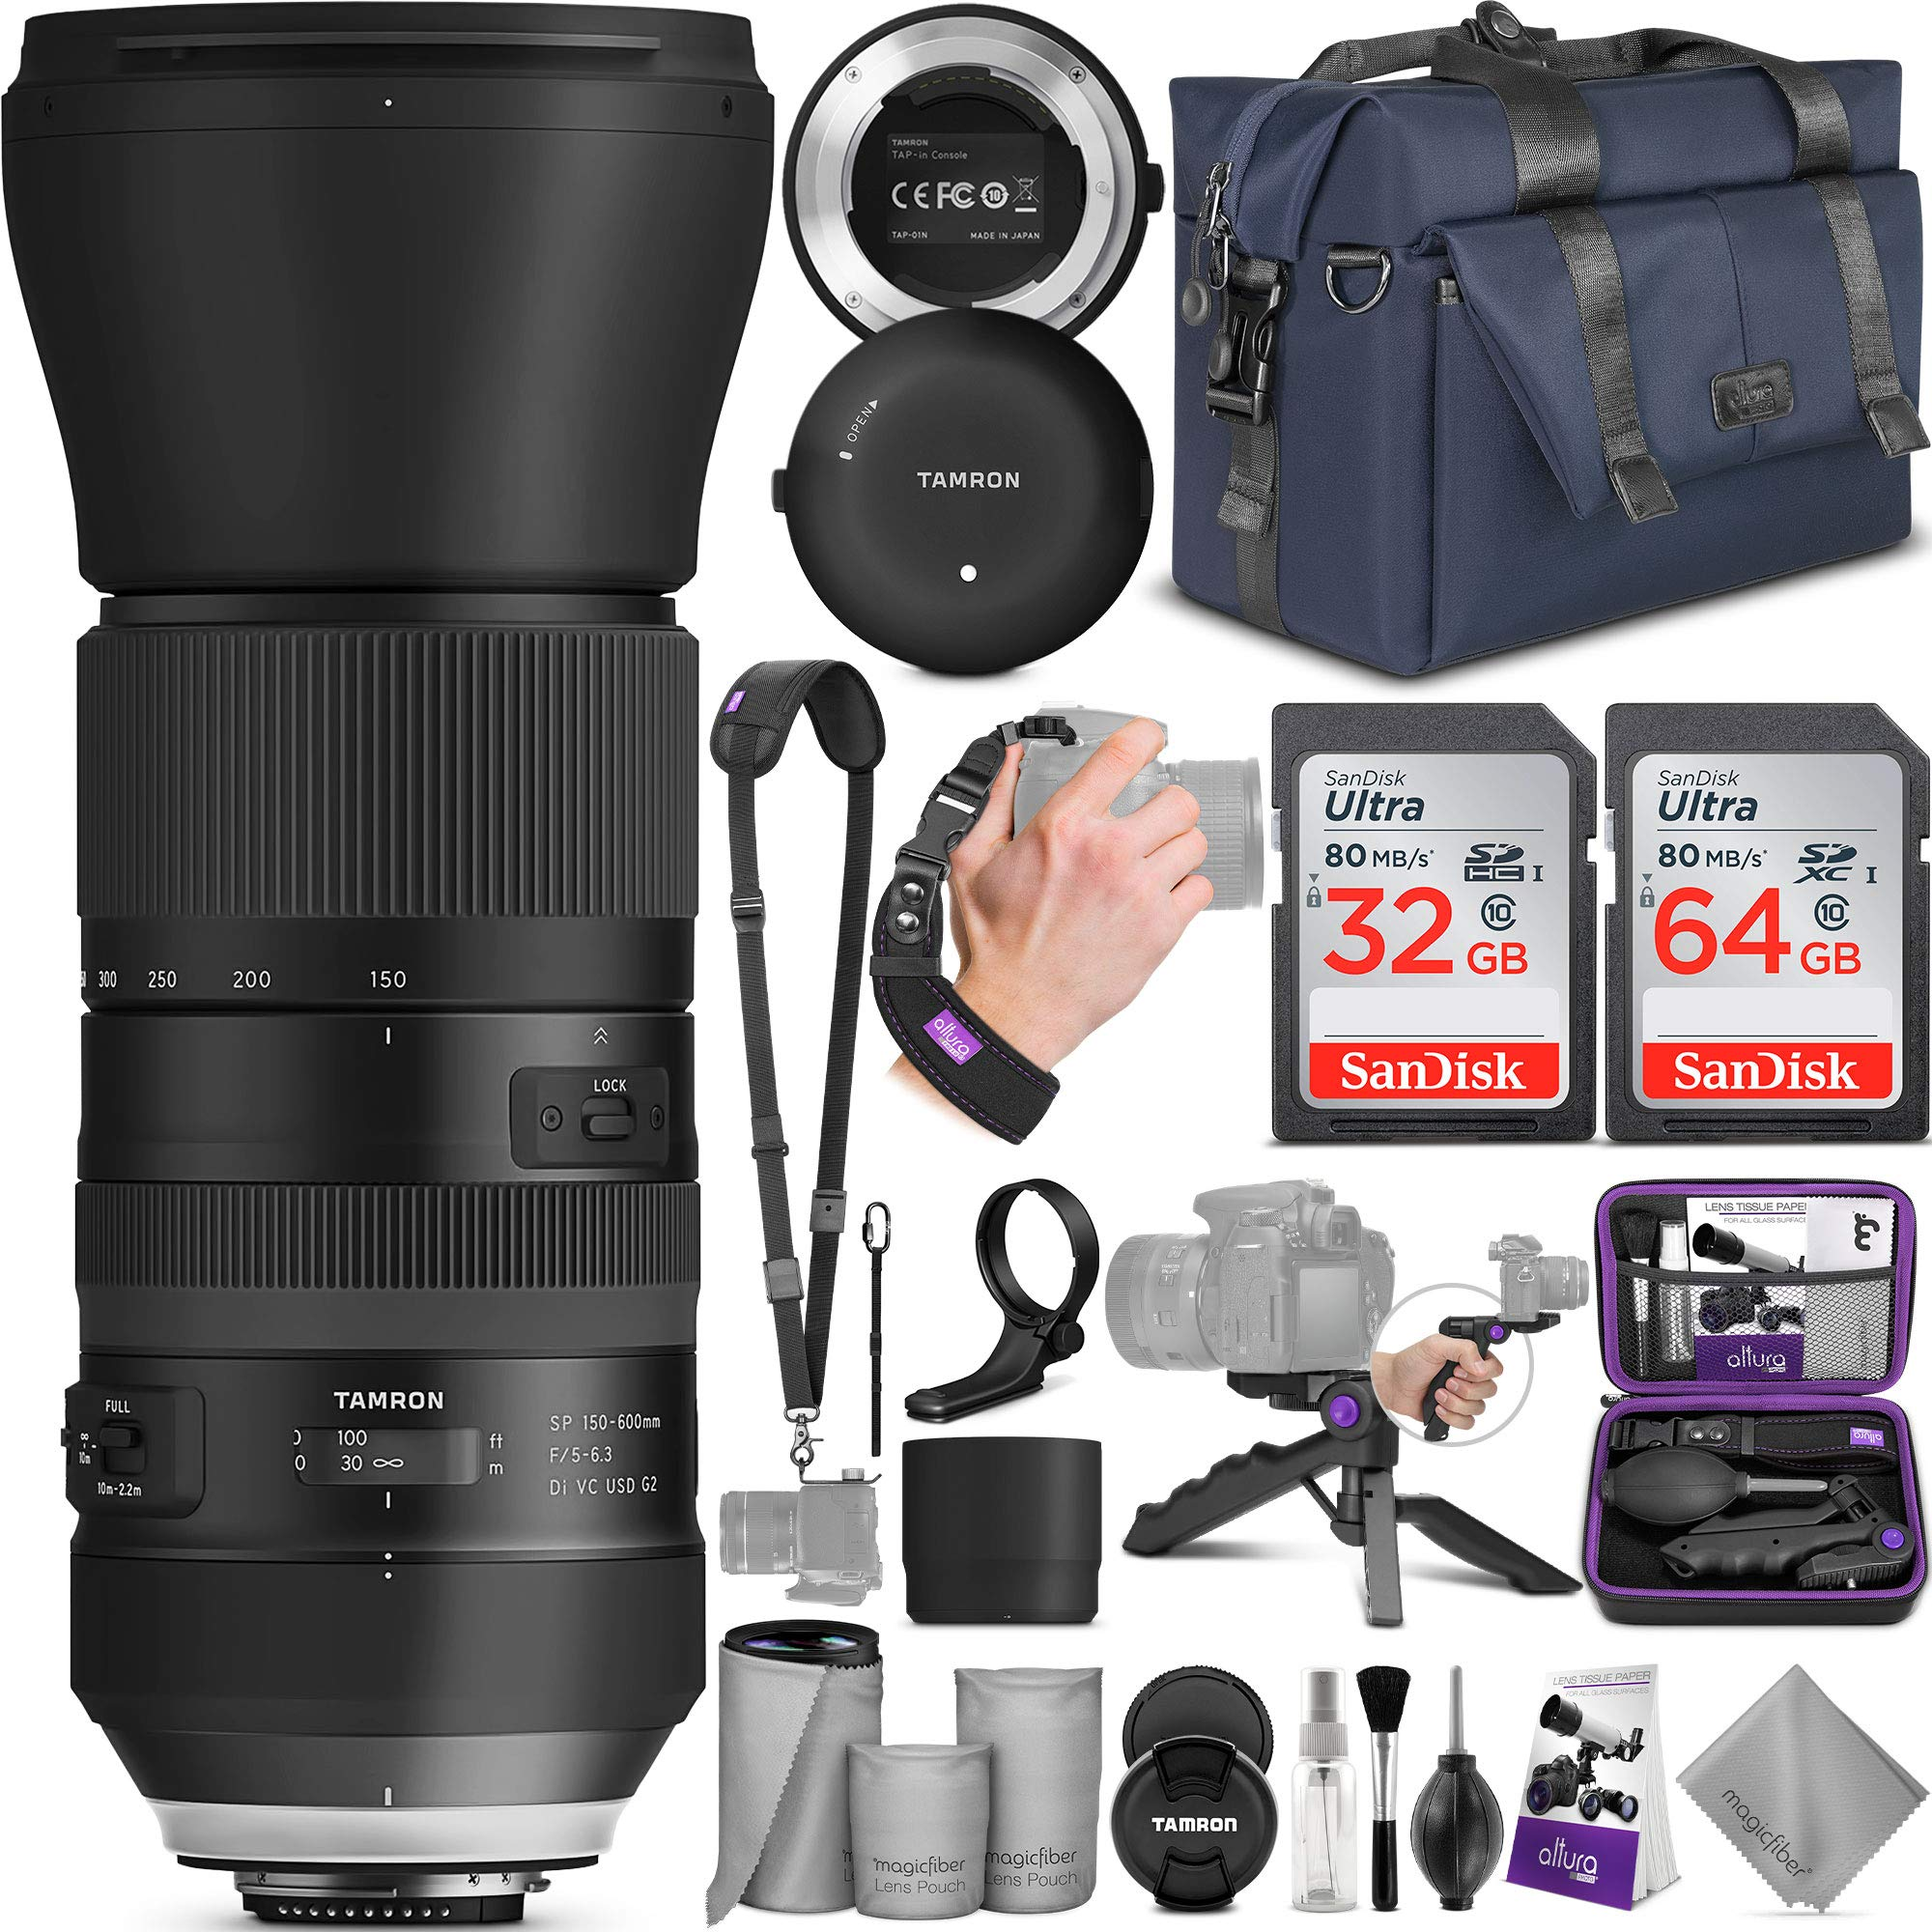 Tamron SP 150-600mm F/5-6.3 Di VC USD G2 Lens for Nikon DSLR Cameras + Tap-in Console with Altura Photo Complete Accessory and Travel Bundle by Tamron